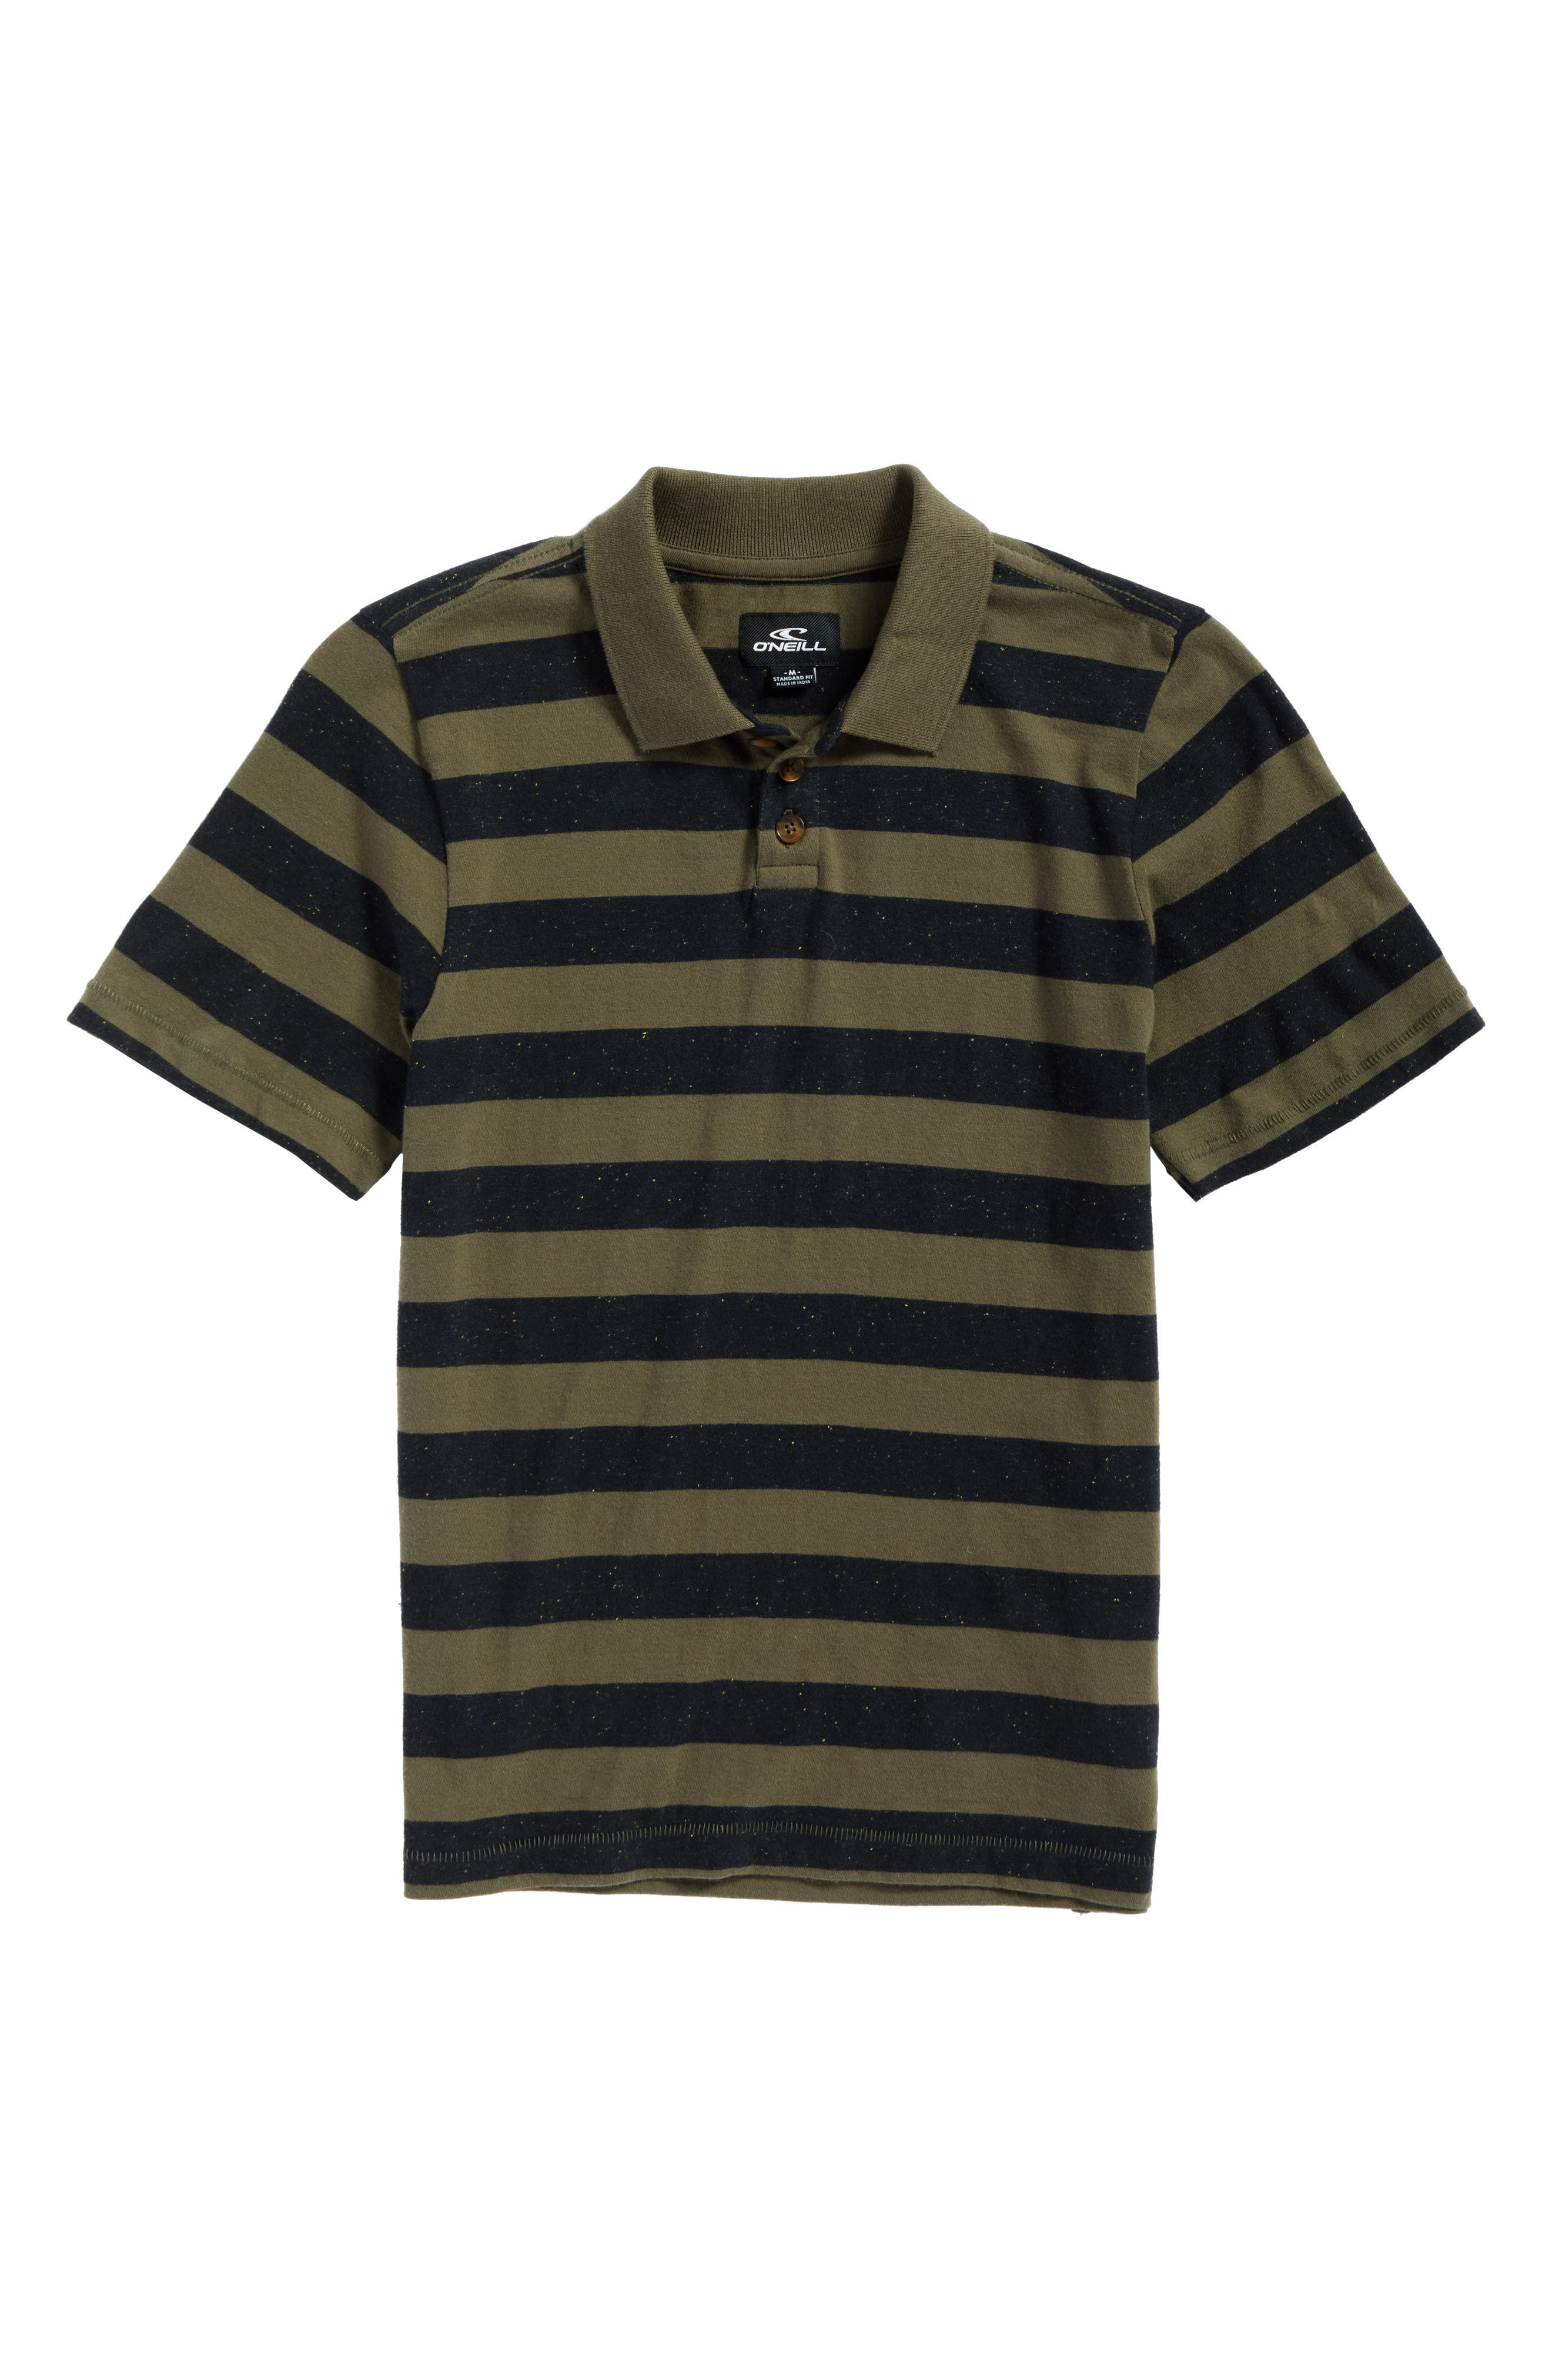 Scoundrel Striped Polo,                         Main,                         color, Army Green